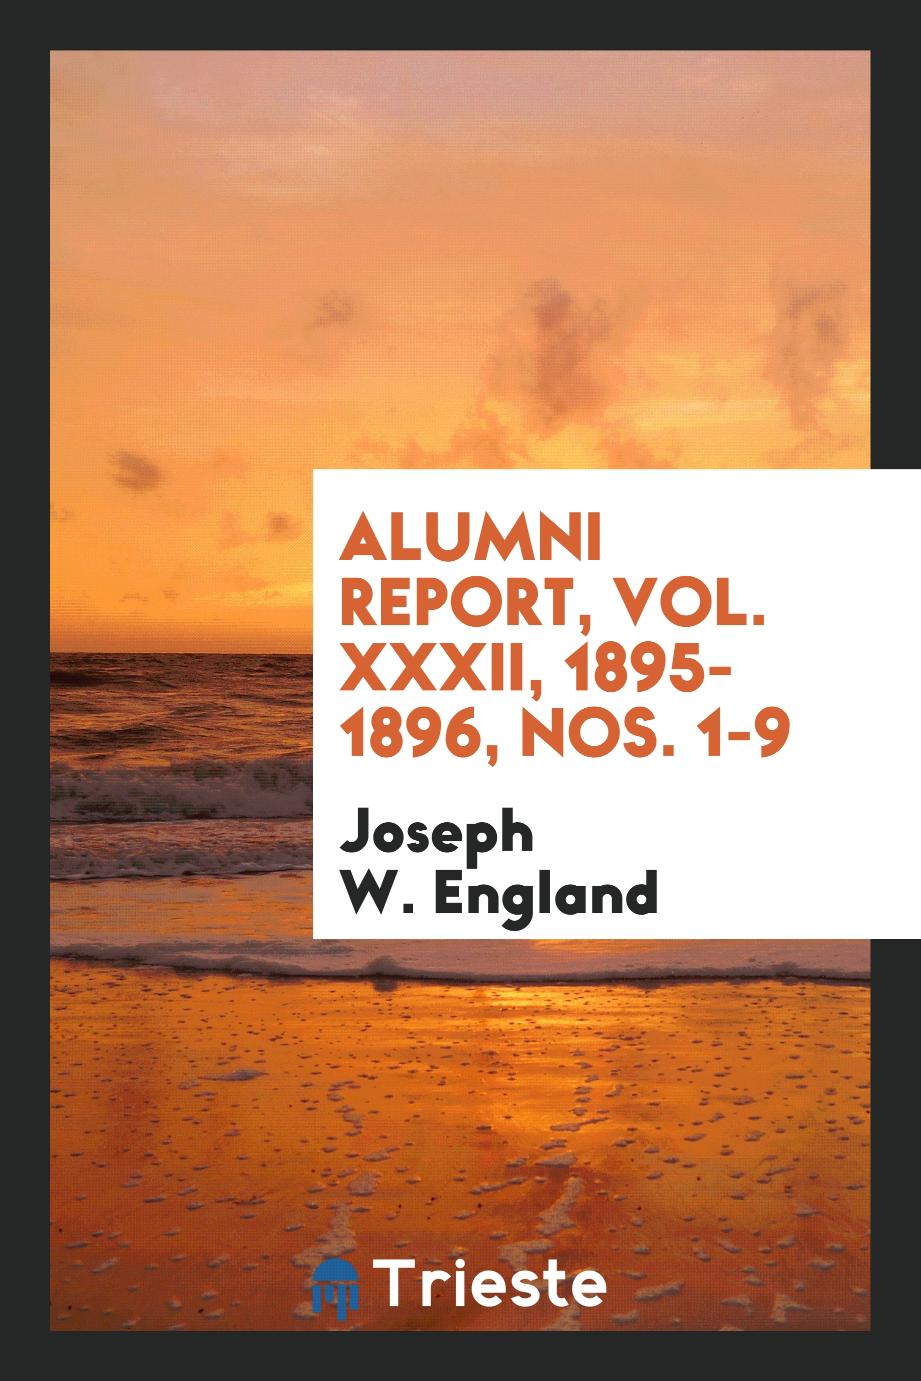 Alumni Report, Vol. XXXII, 1895-1896, Nos. 1-9